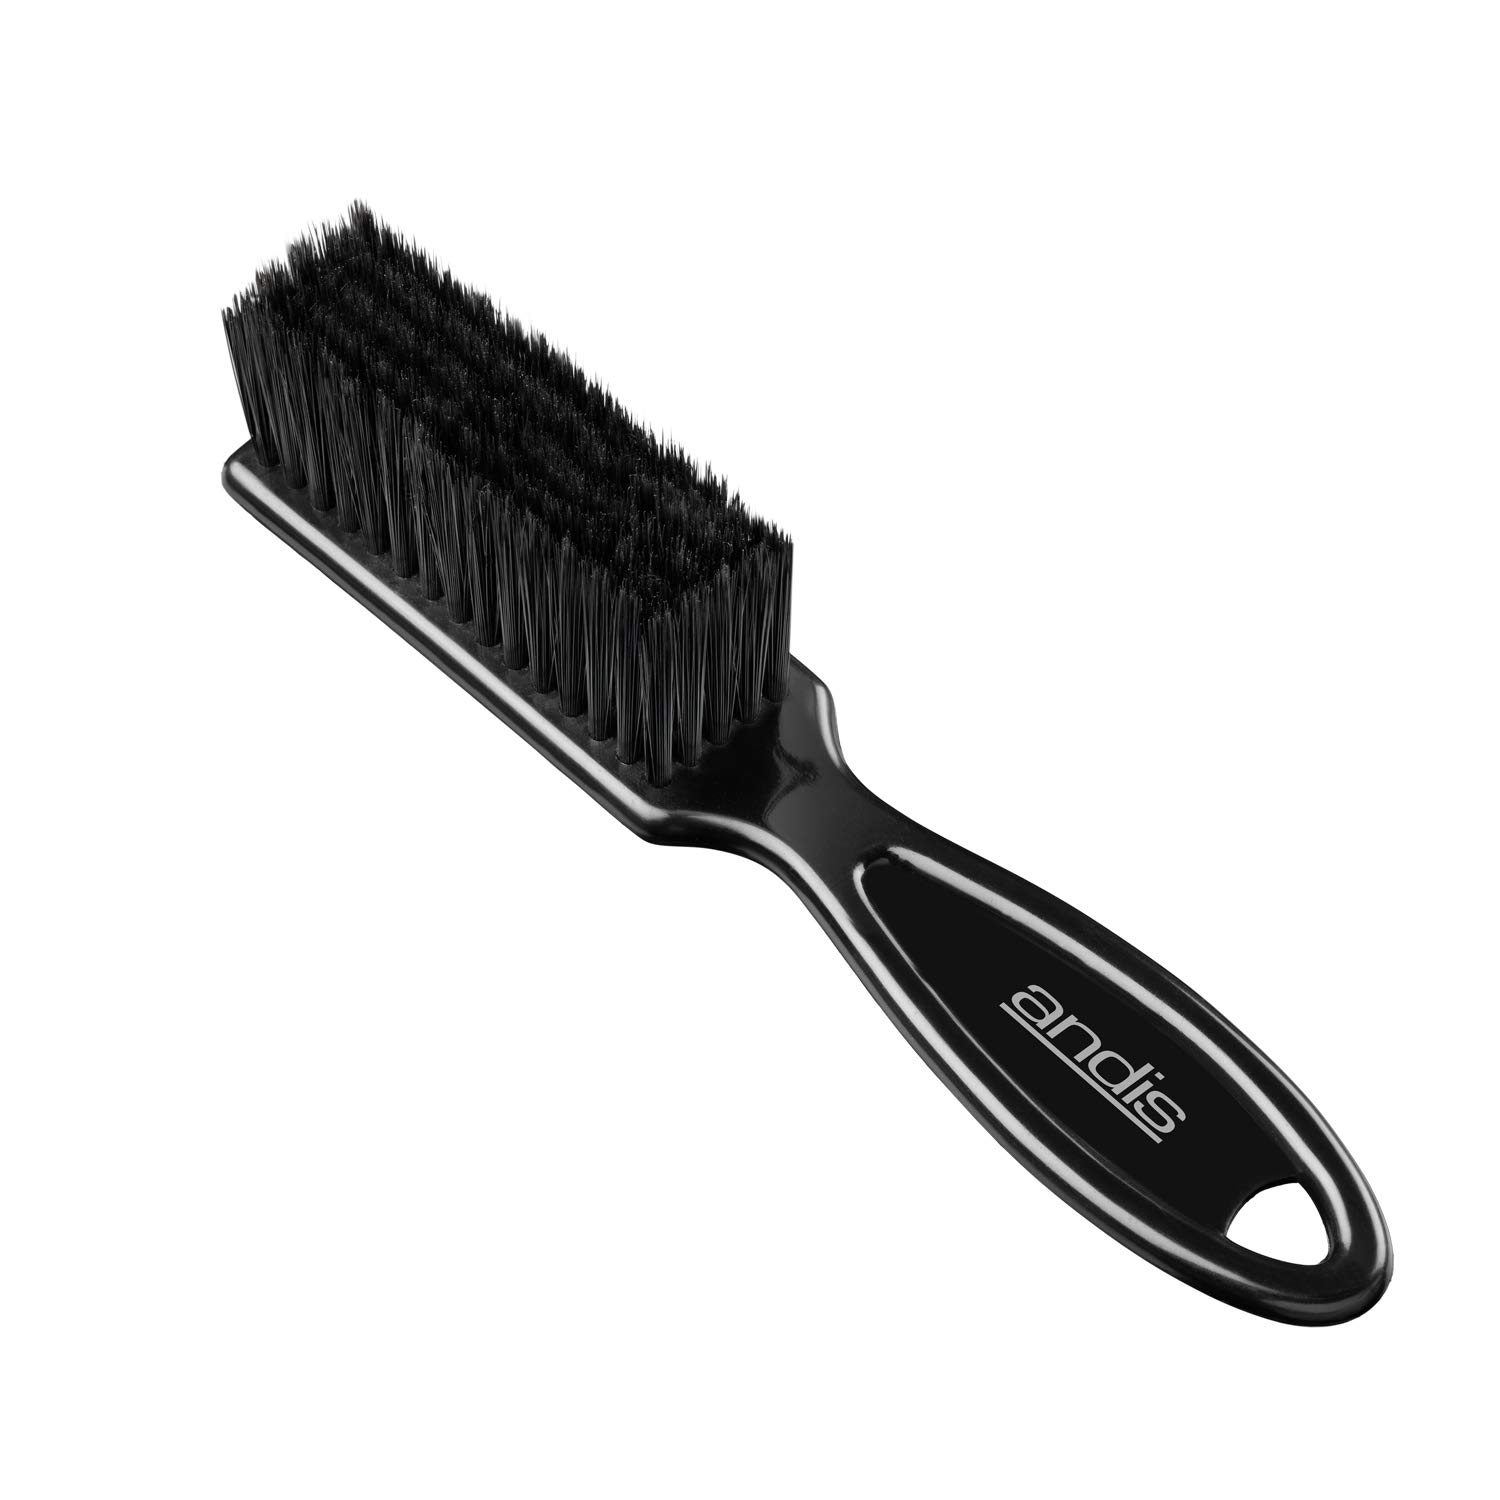 Andis Blade Cleaning Brush CL-12415